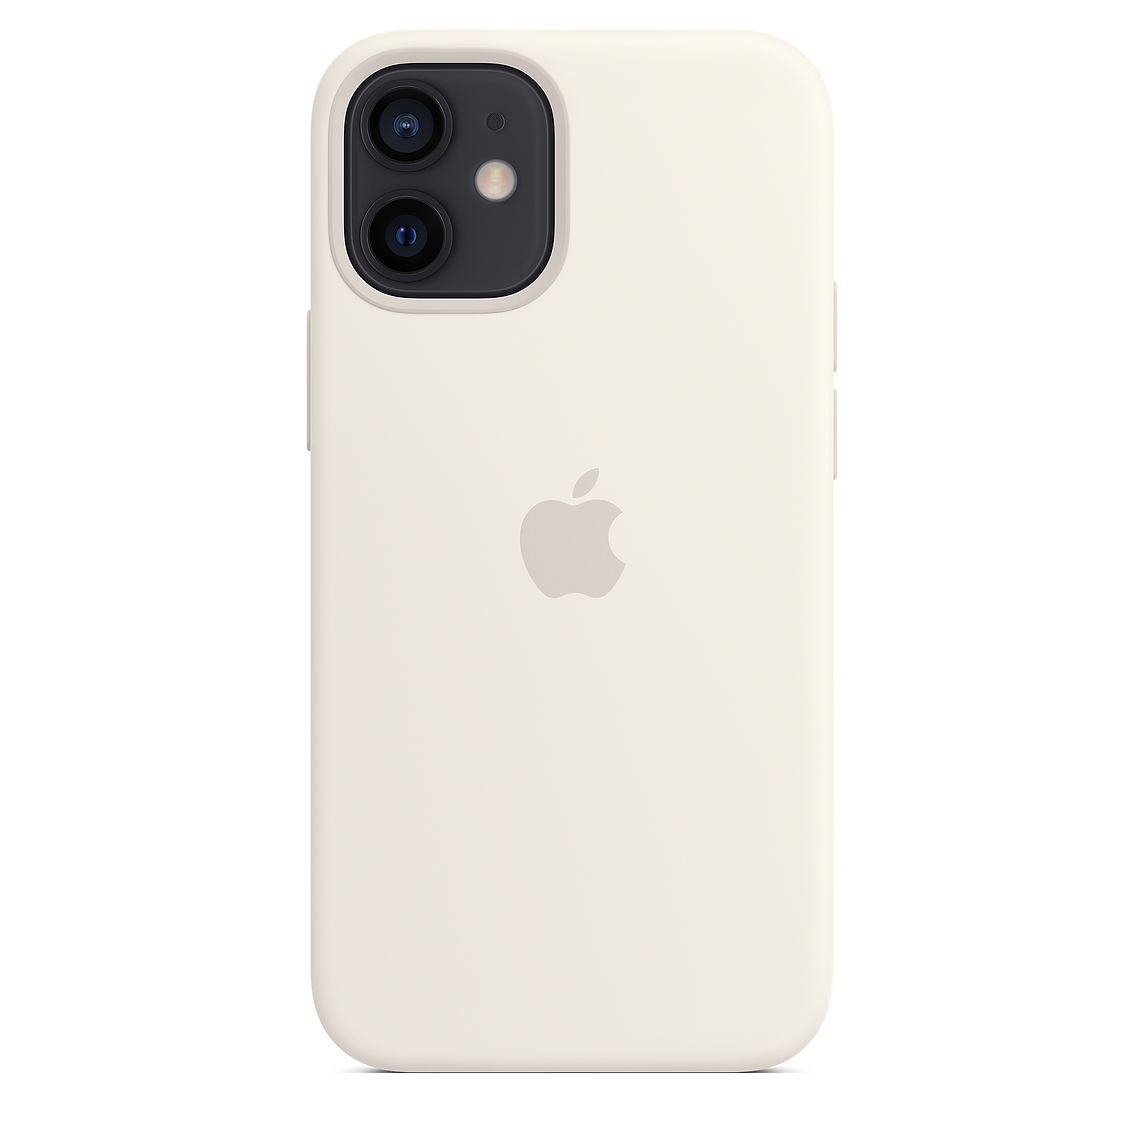 - iPhone 12 mini Silicone Case with MagSafe / Blanco 1